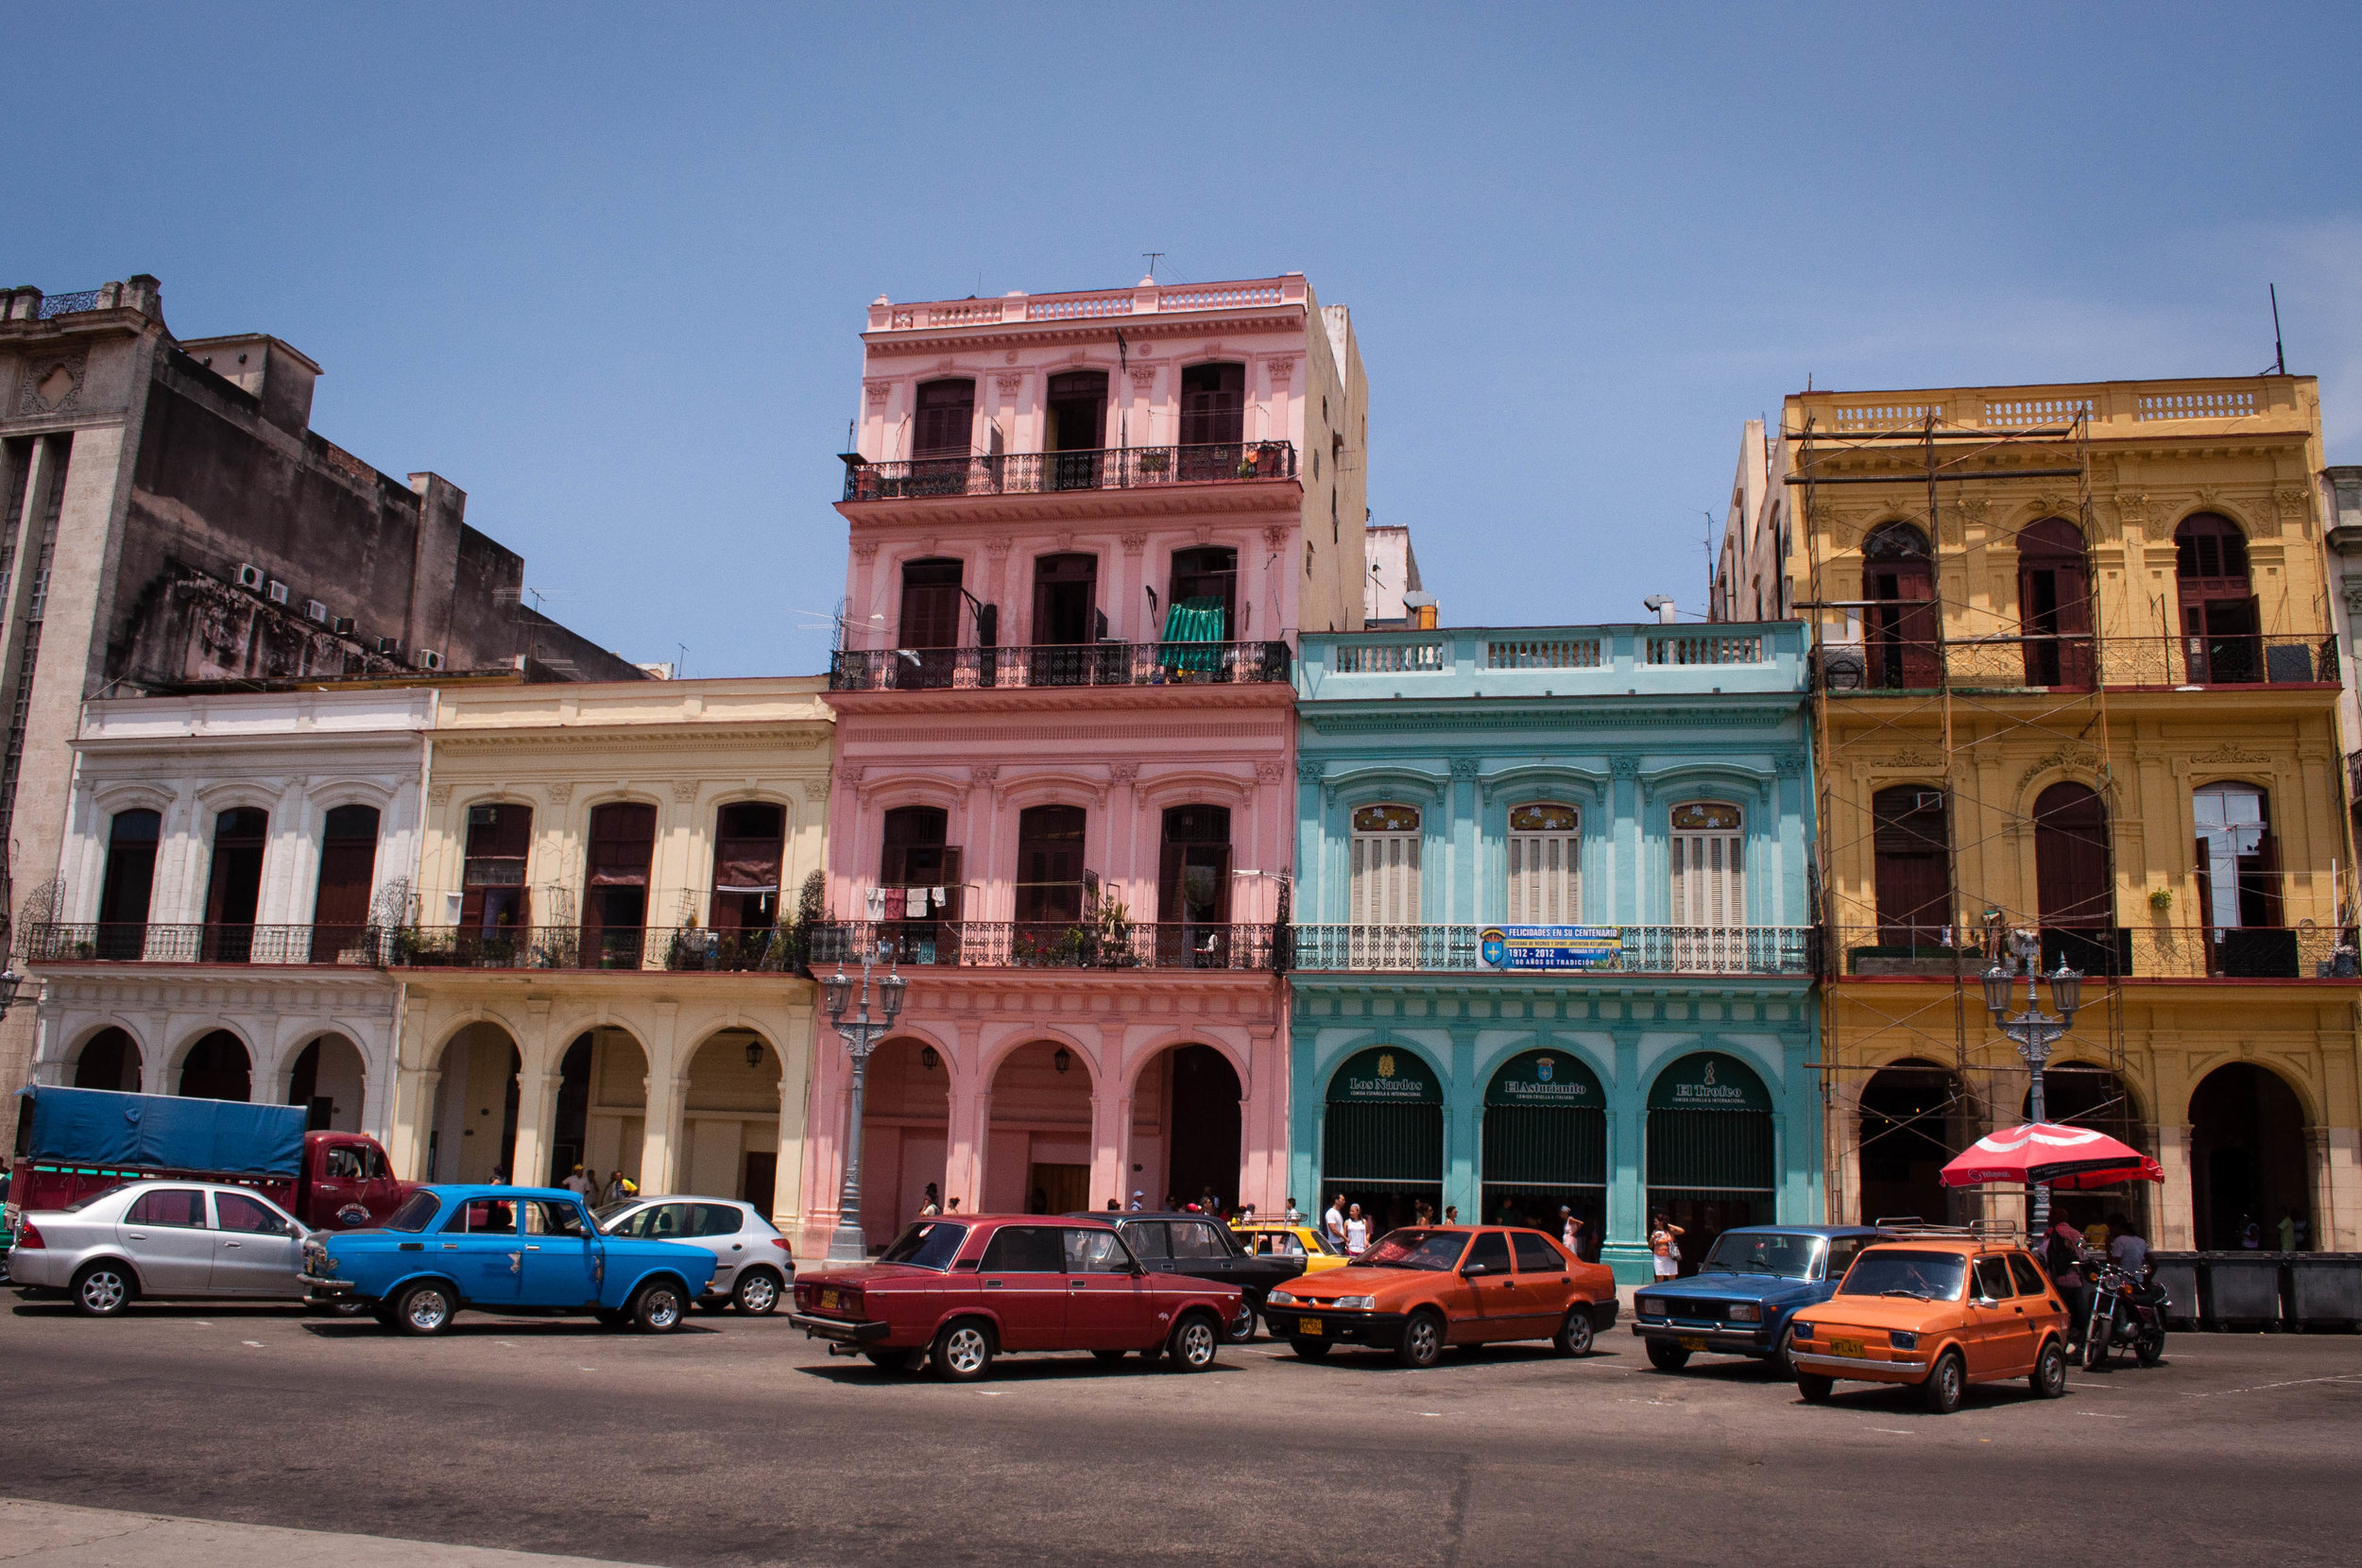 Colourful buildings seen during our day trip to La Havana